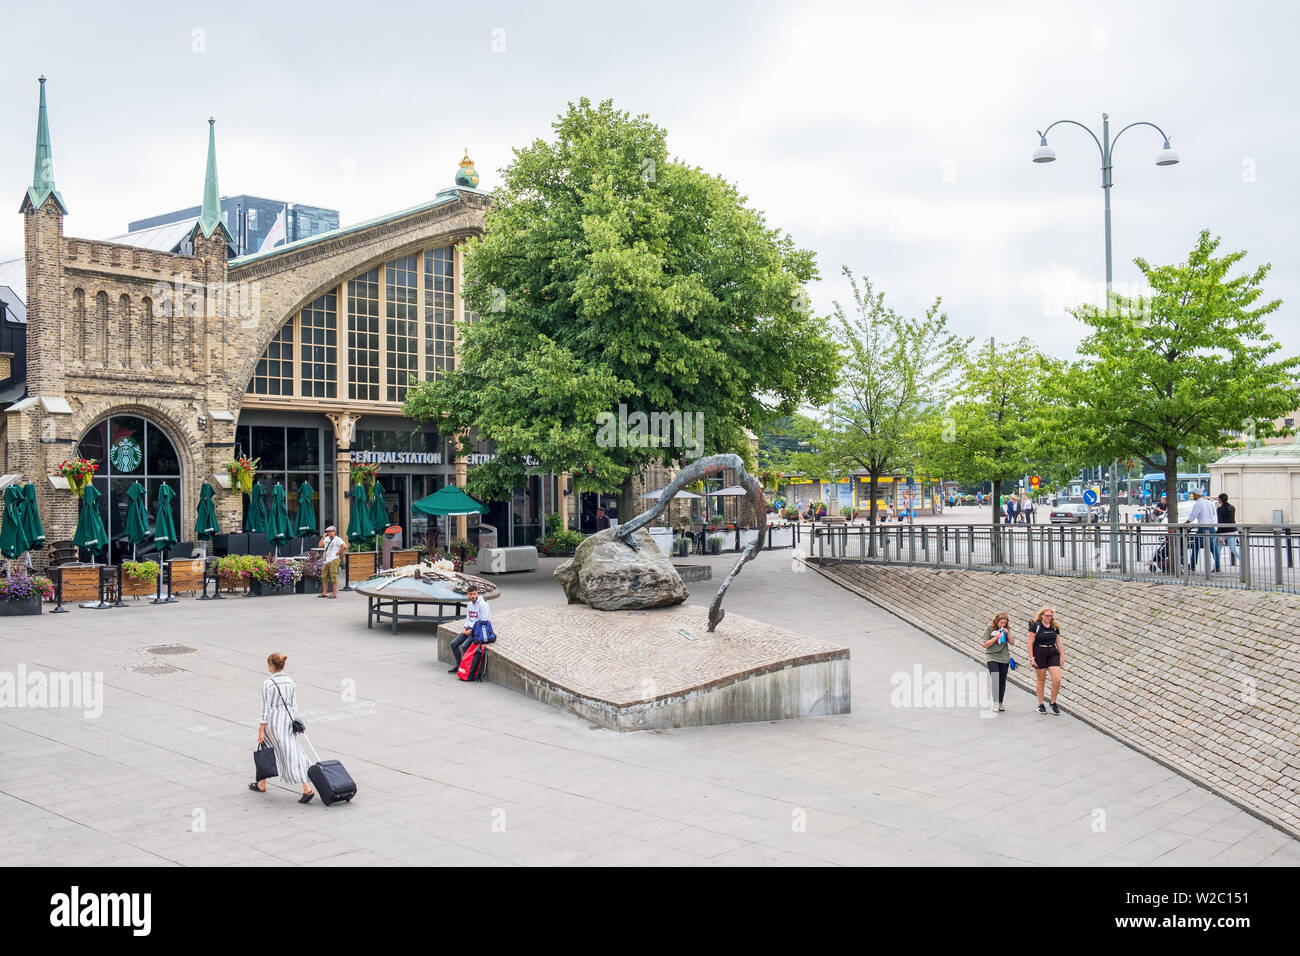 People walking outside the railway station in Gothenburg in Sweden - Stock Image